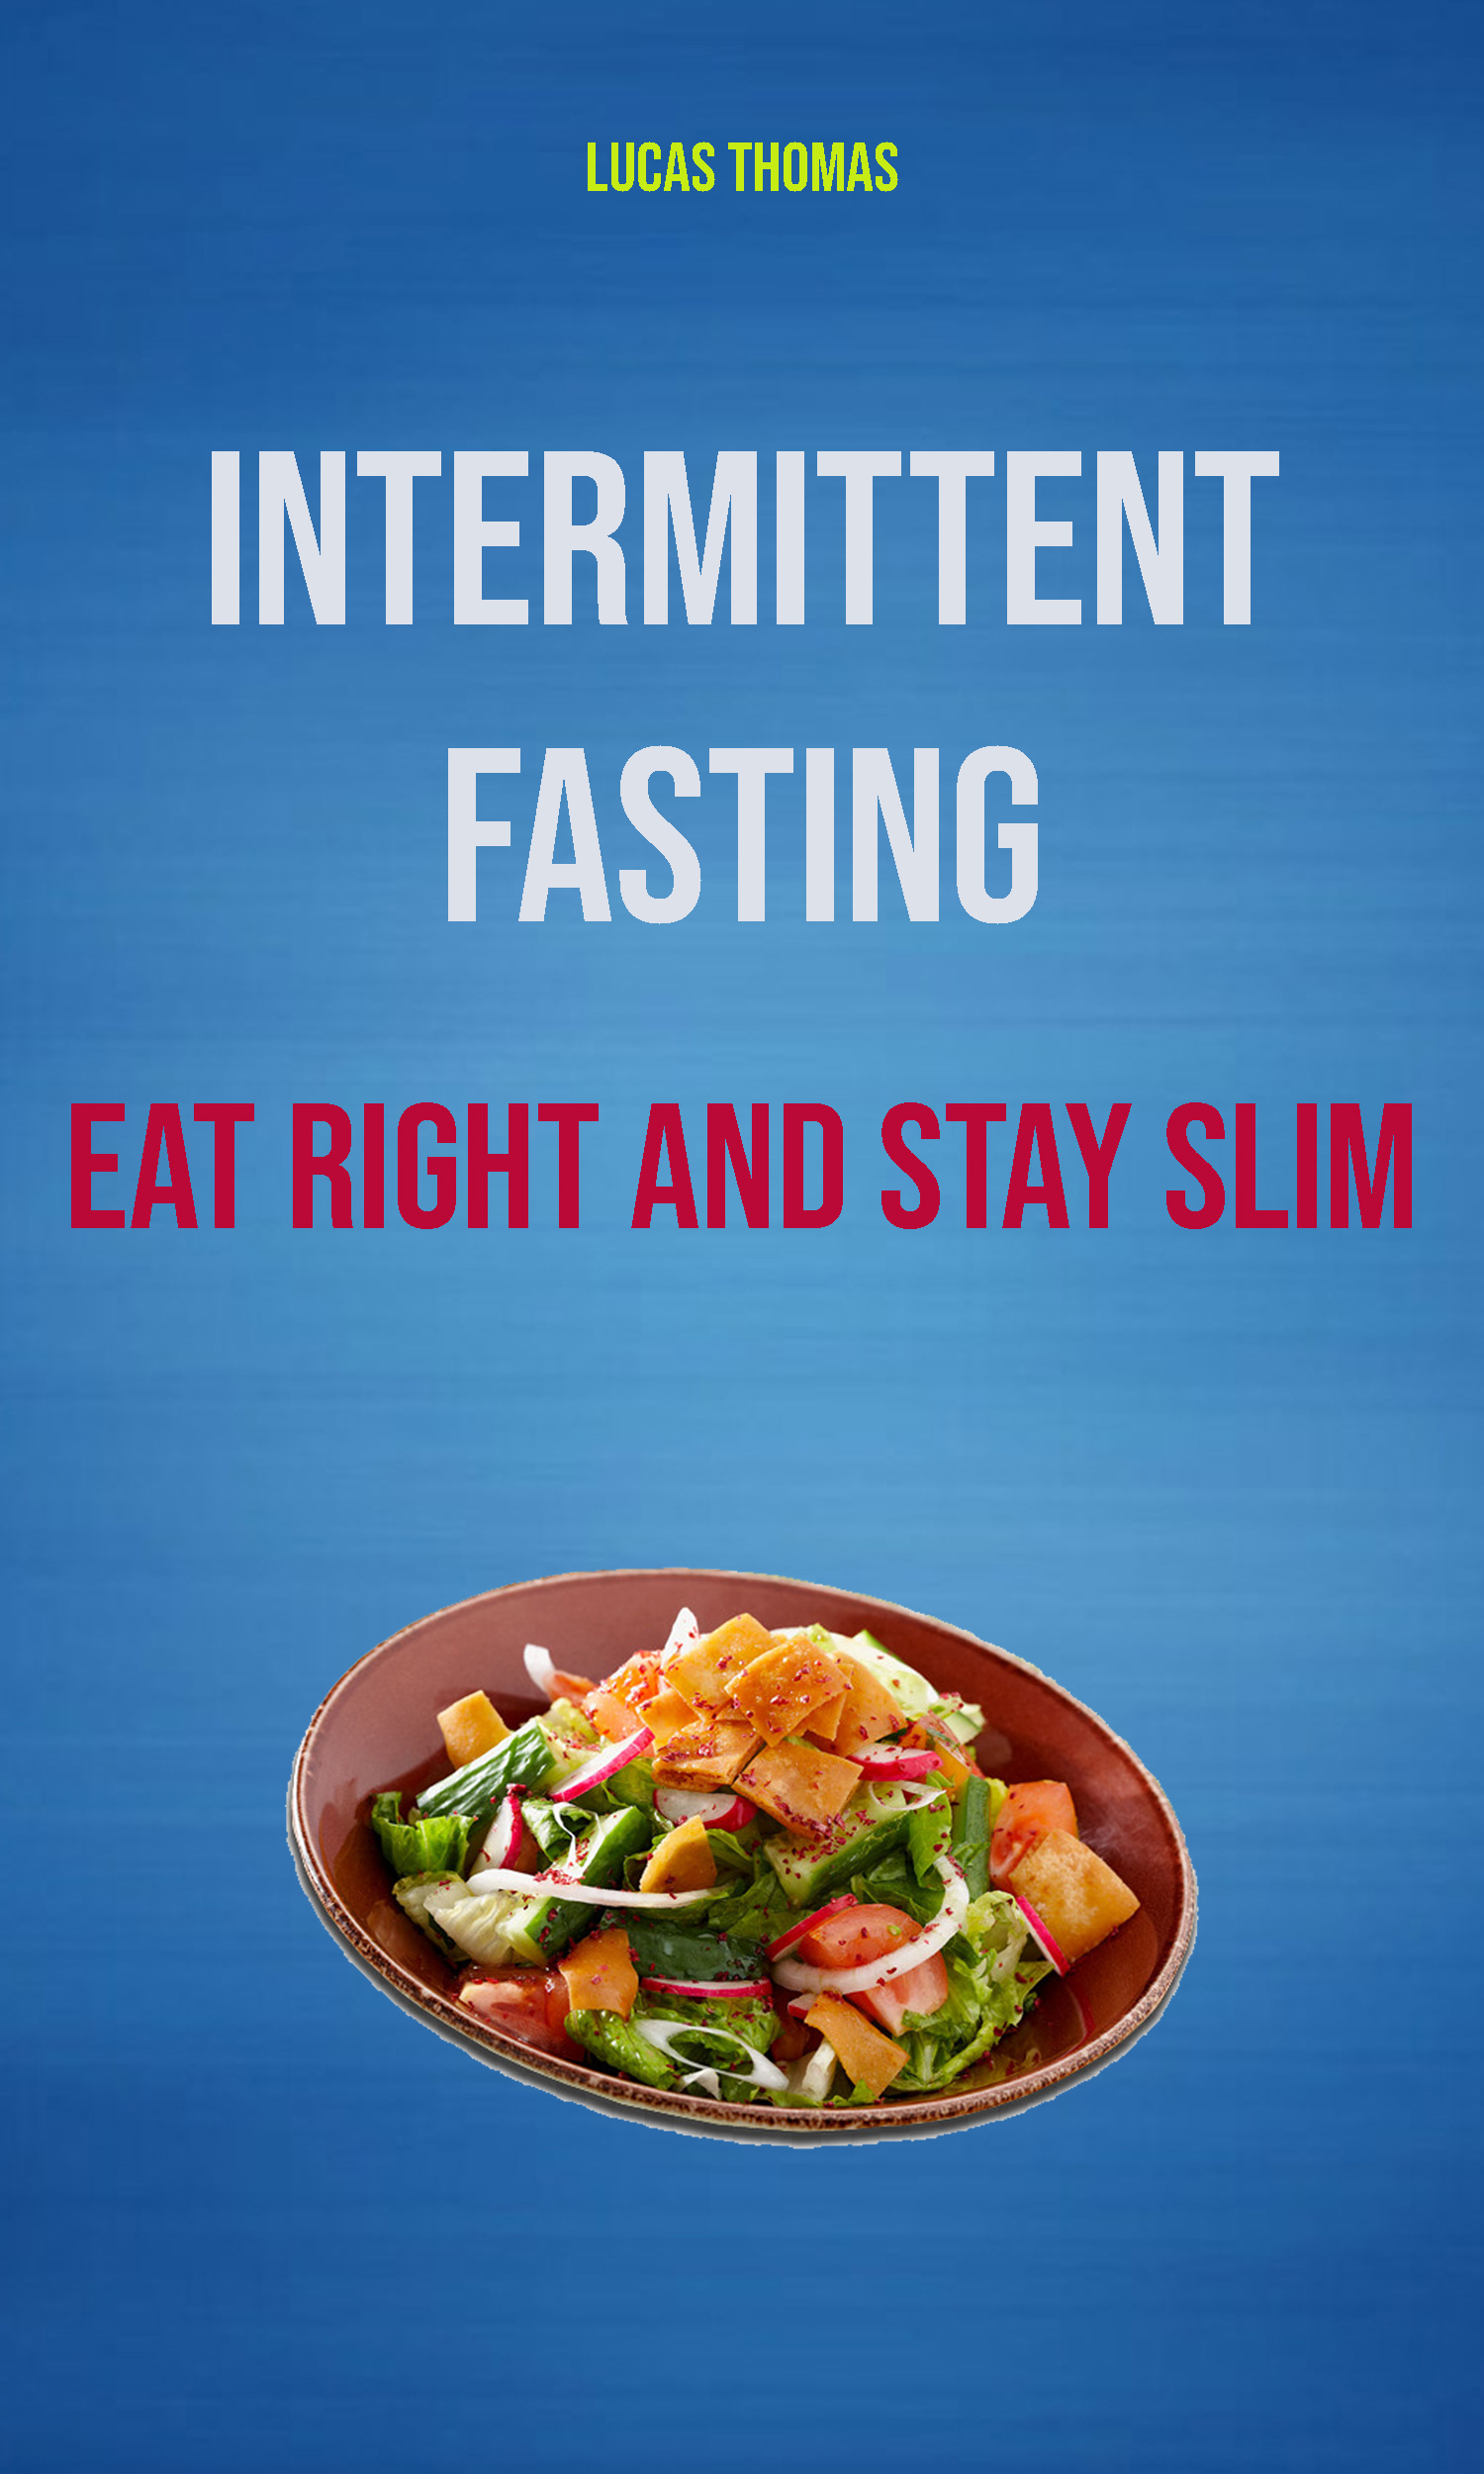 Intermittent fasting: eat right and stay slim